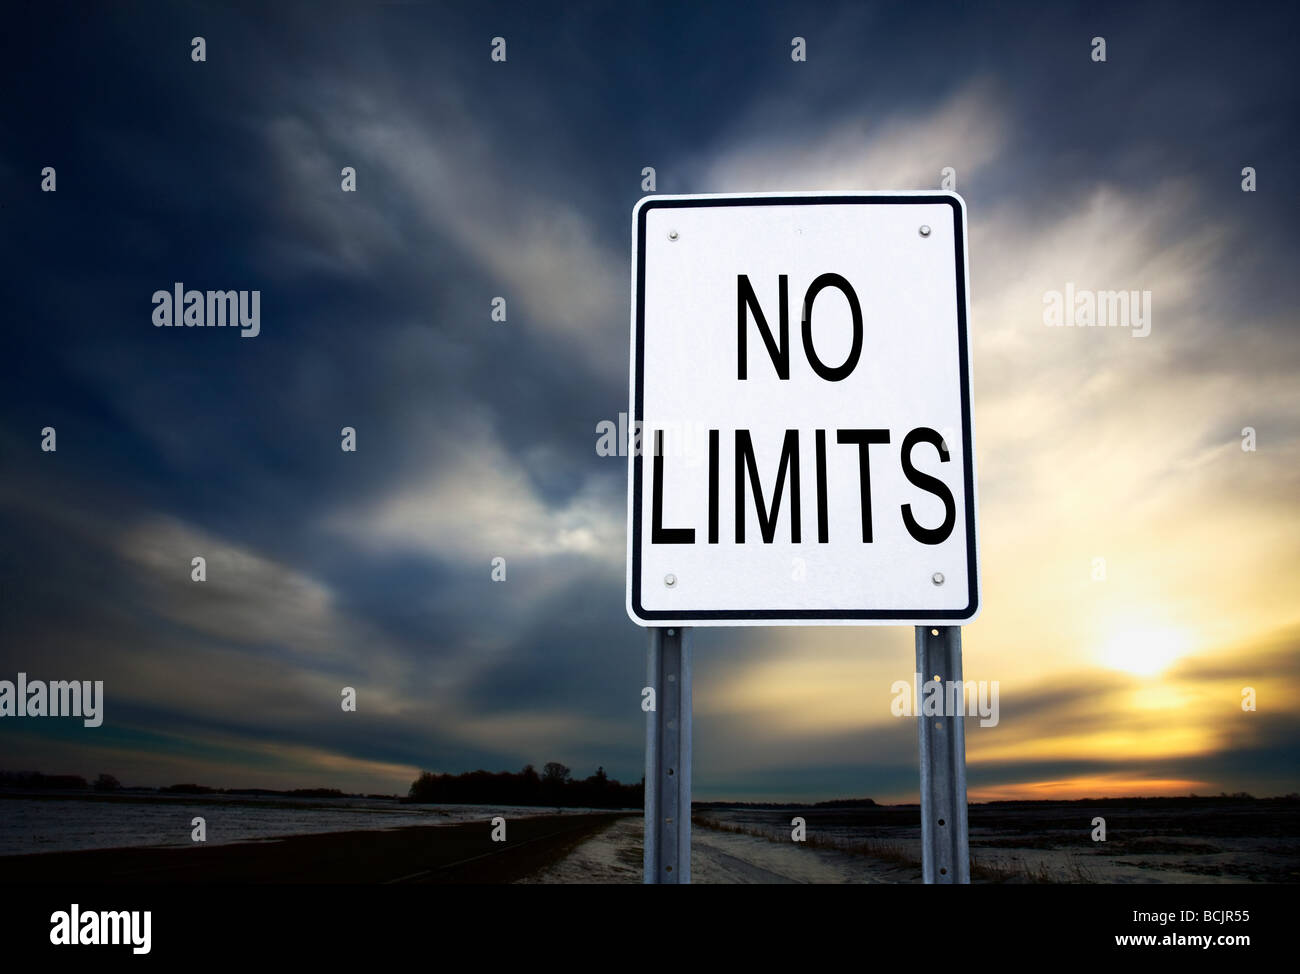 No limits sign - Stock Image